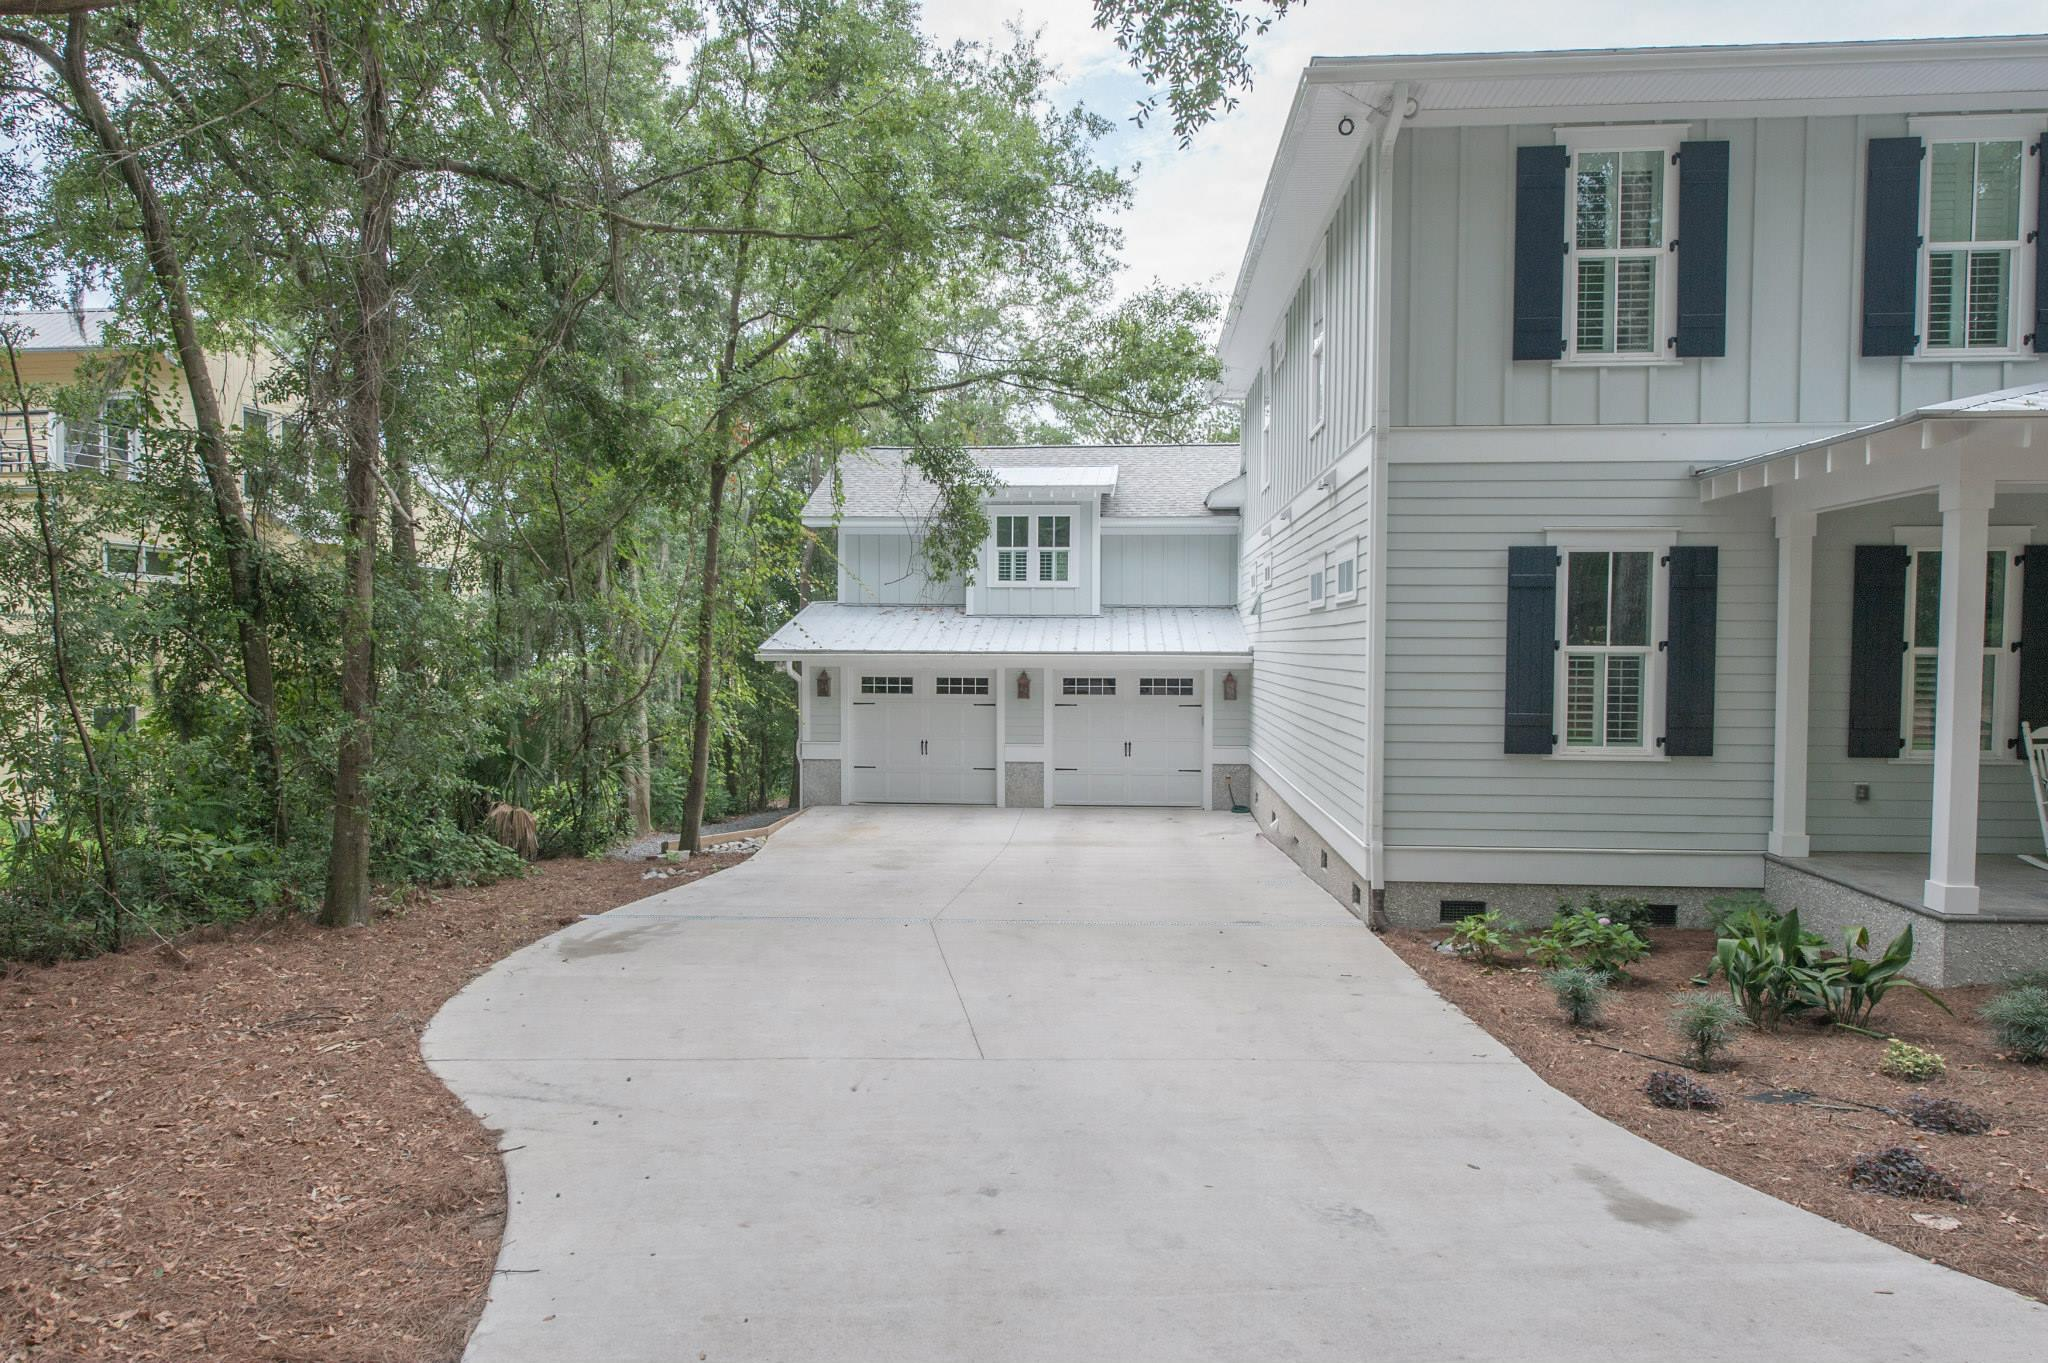 Yellow House Place Homes For Sale - 496 Yellow House, Wando, SC - 6